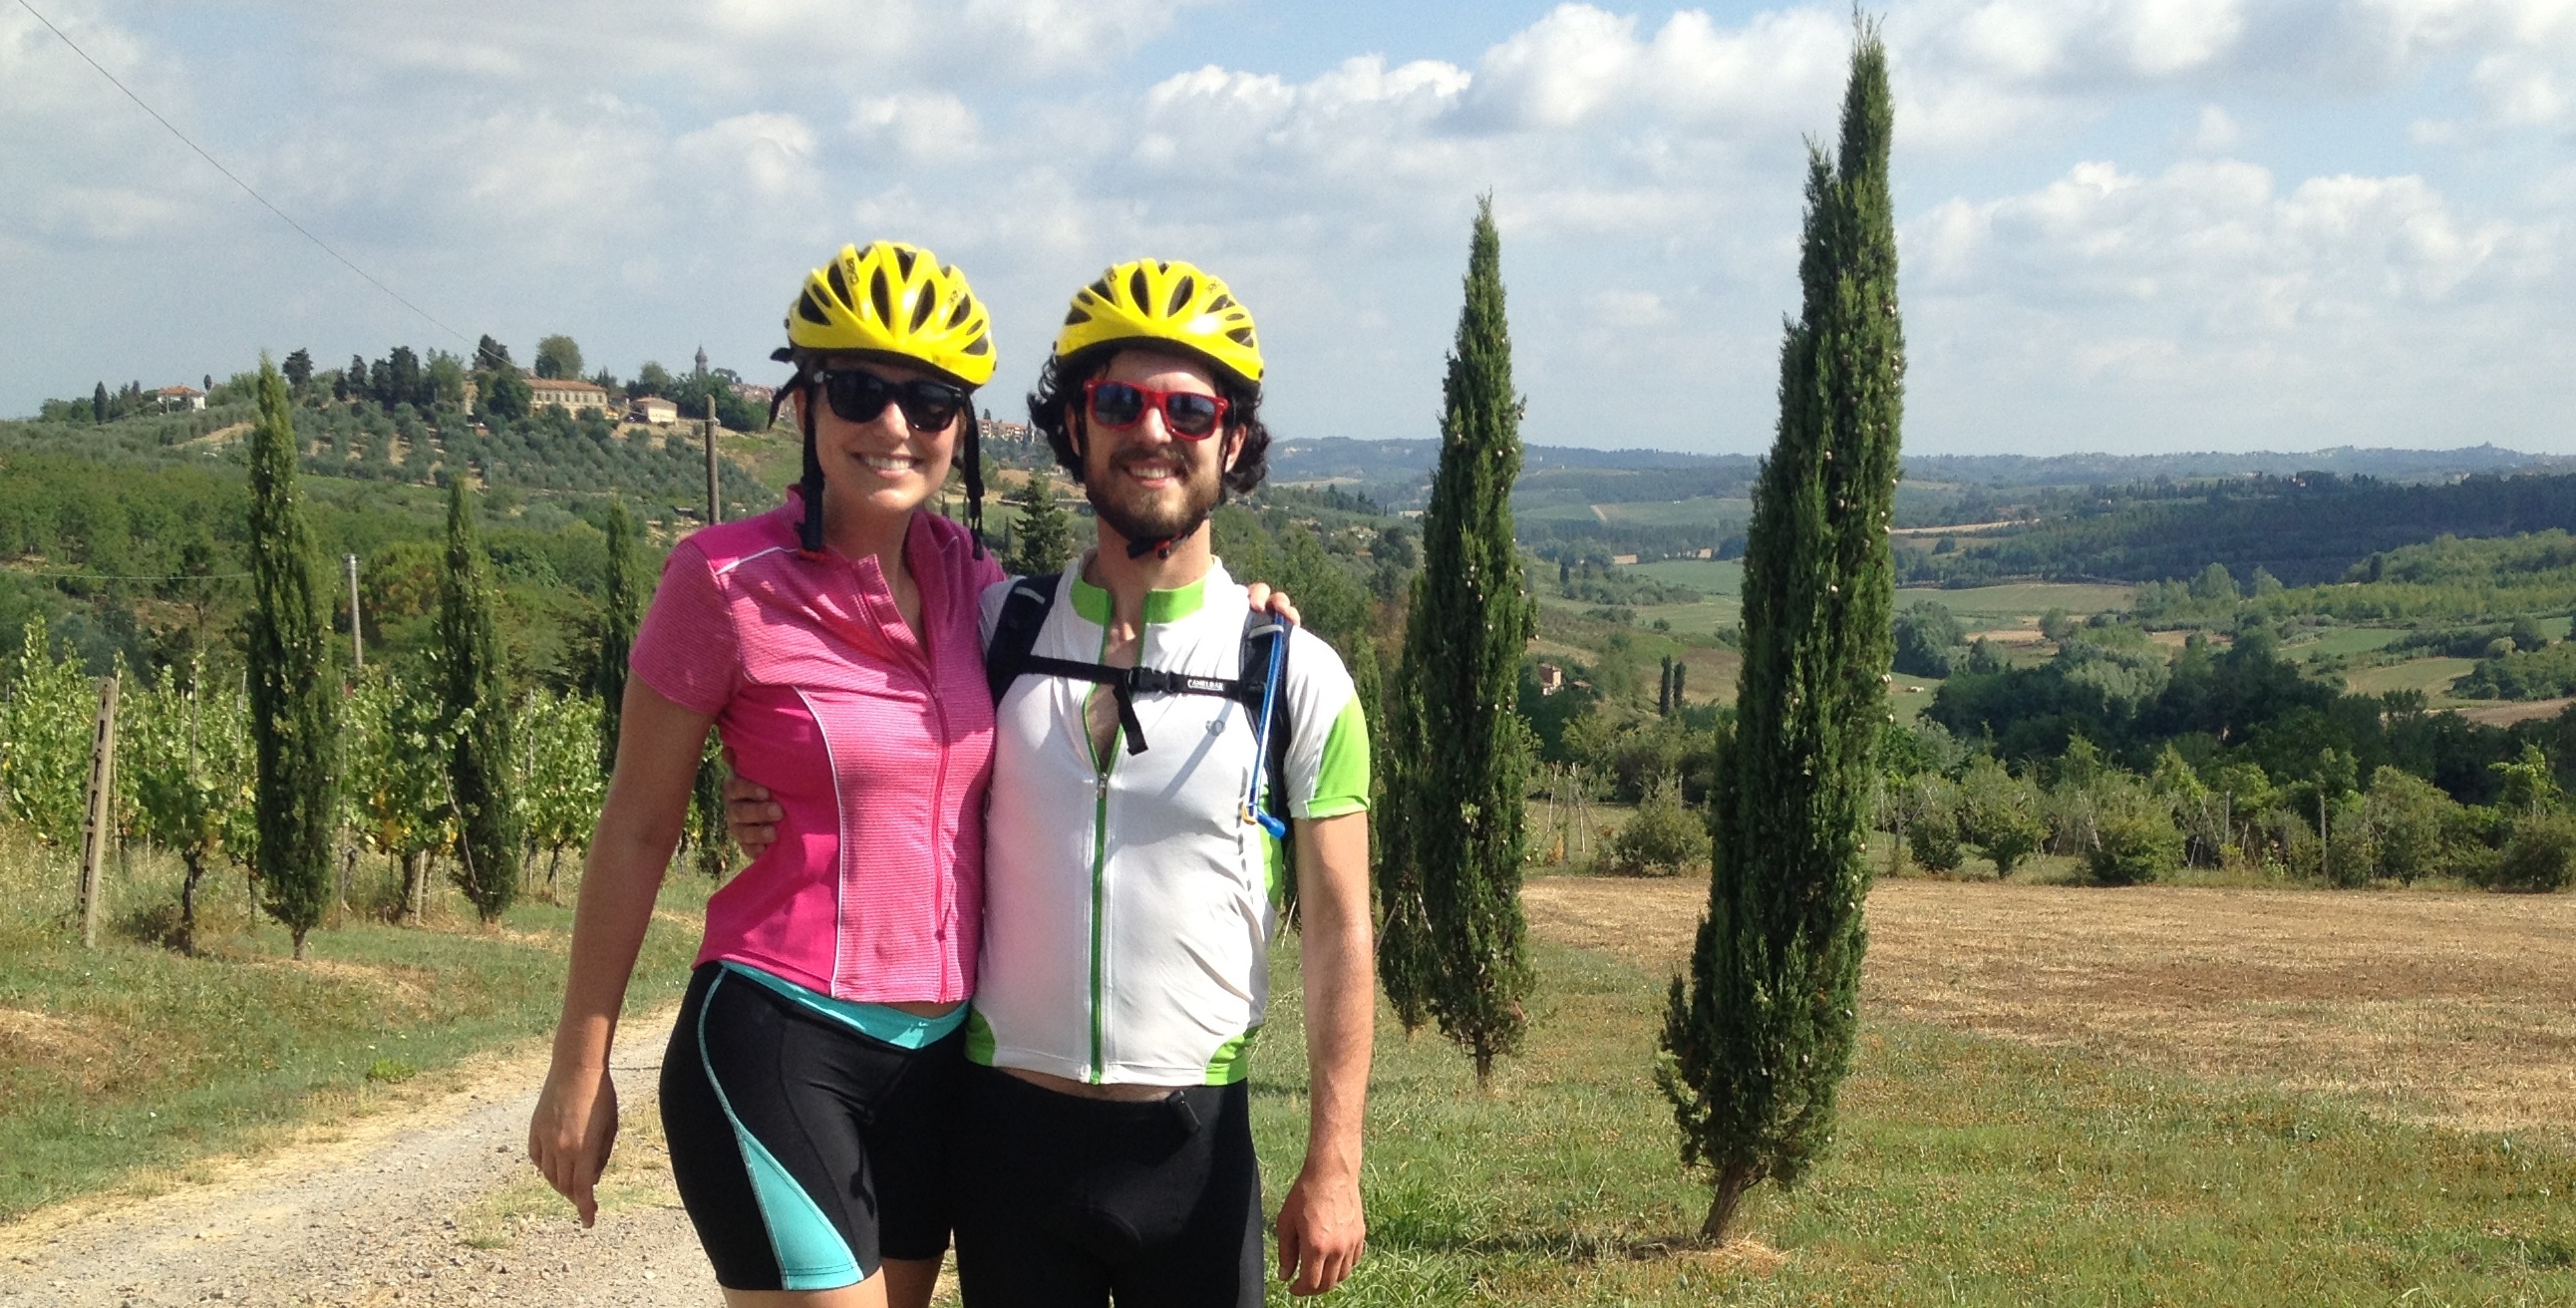 Sarah & Simon enjoying their Secret Tuscany self-guided bike tour on Hybrid bike